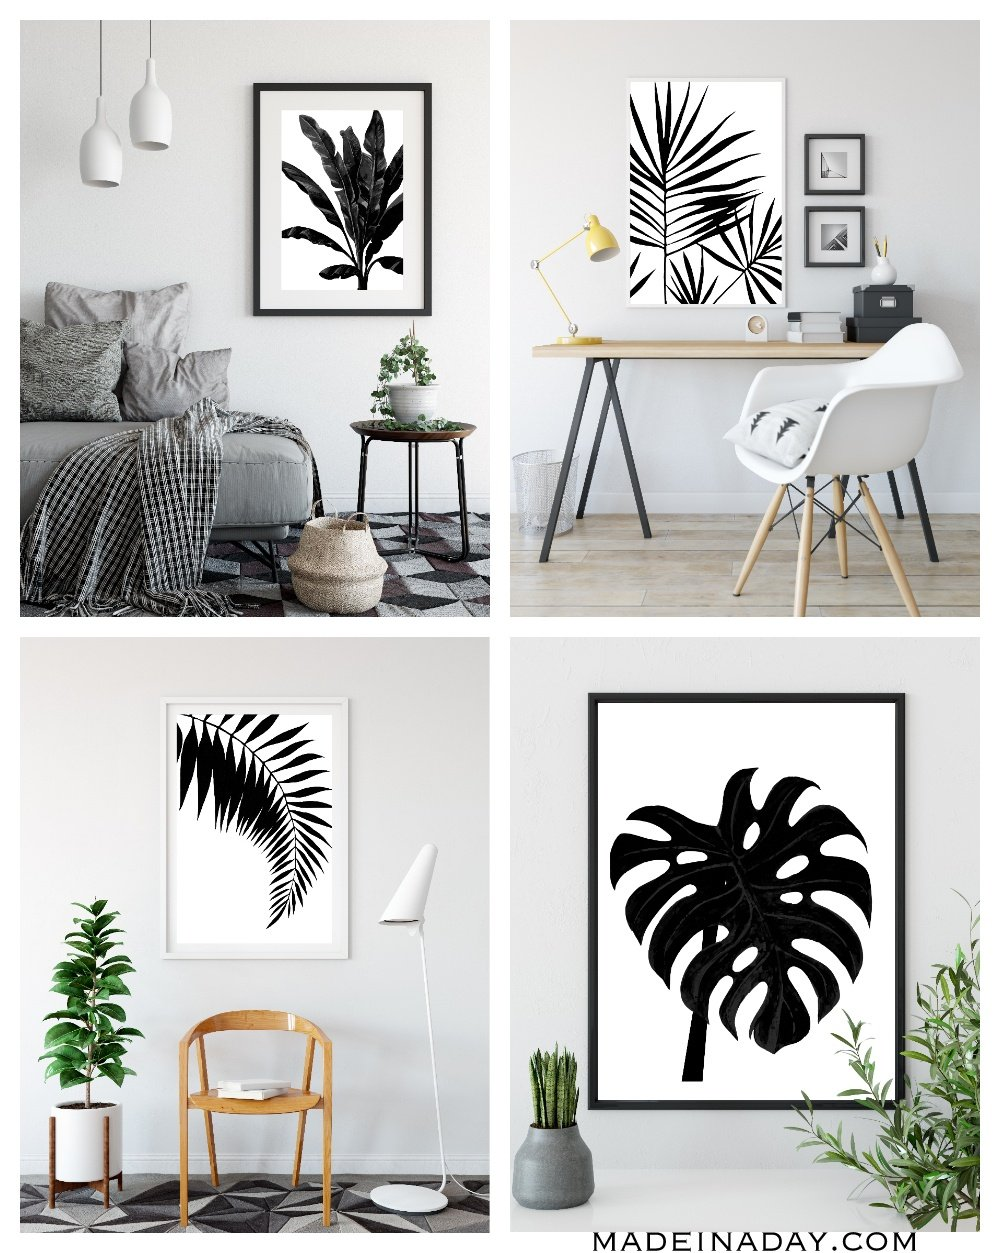 Black and white palm prints